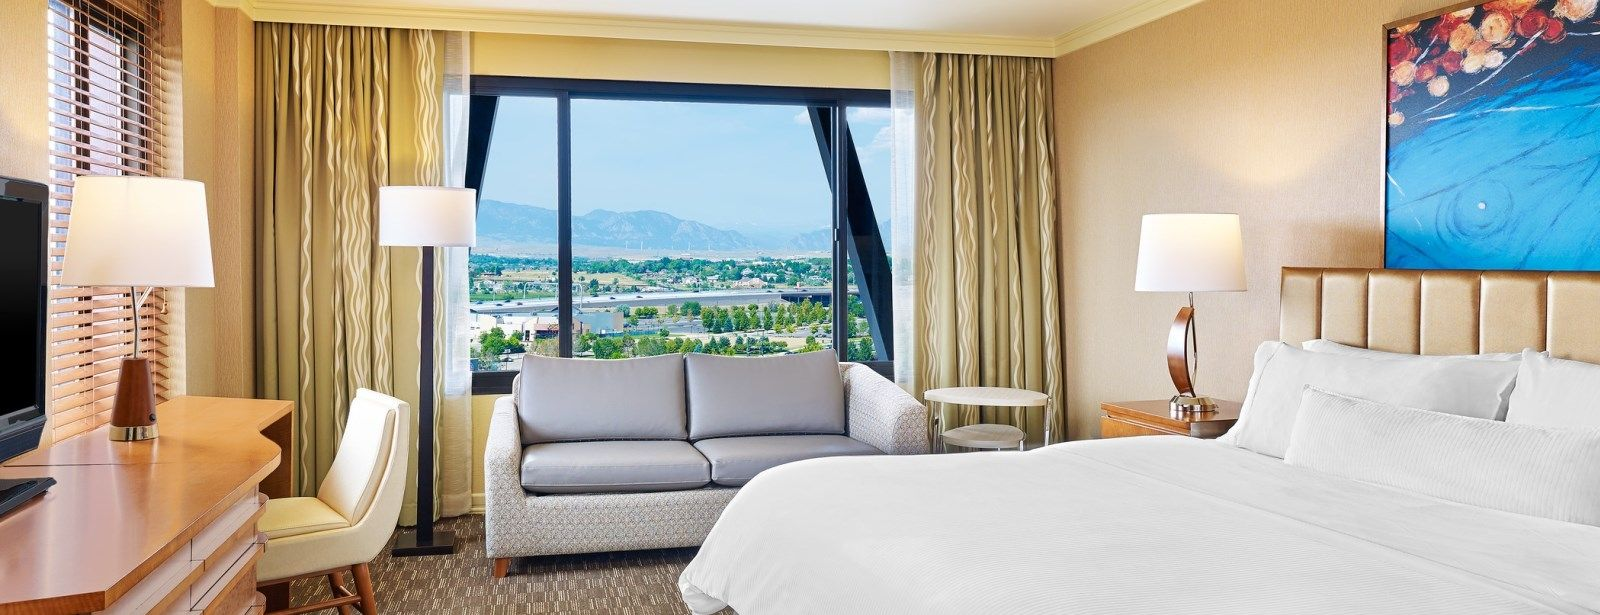 Deluxe Mountain View Room | The Westin Westminster